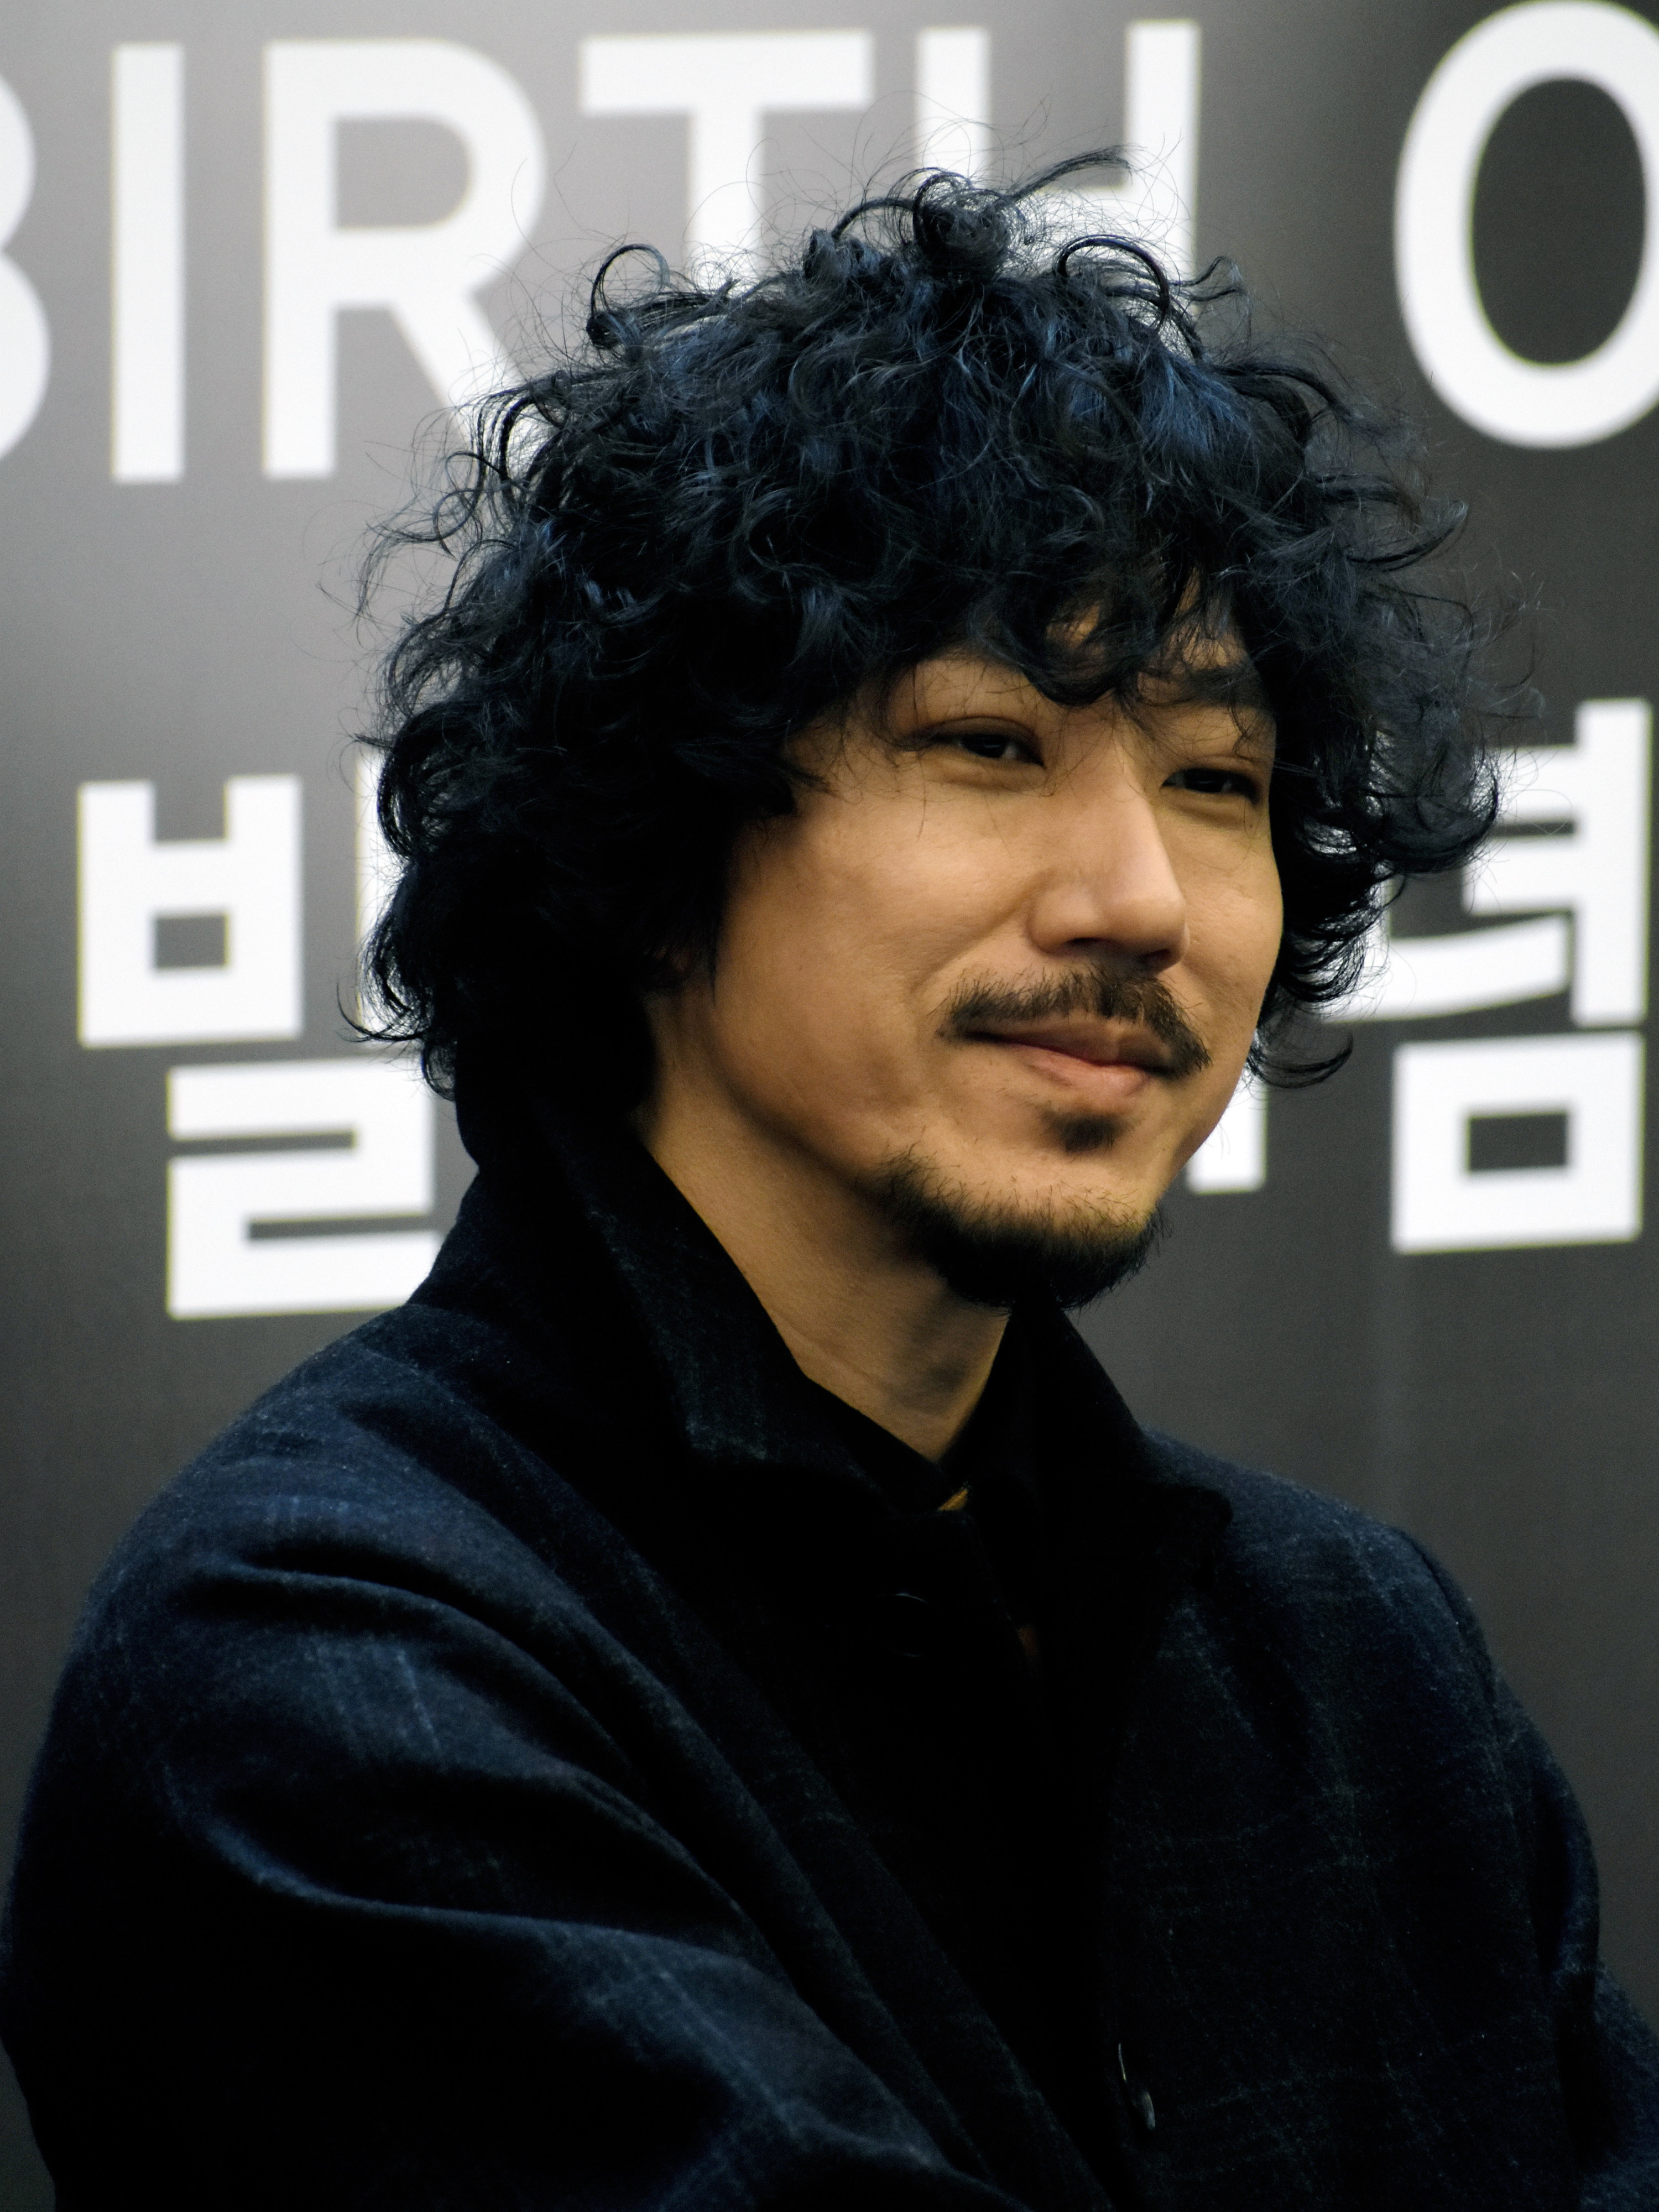 Tiger JK - Wikipedia